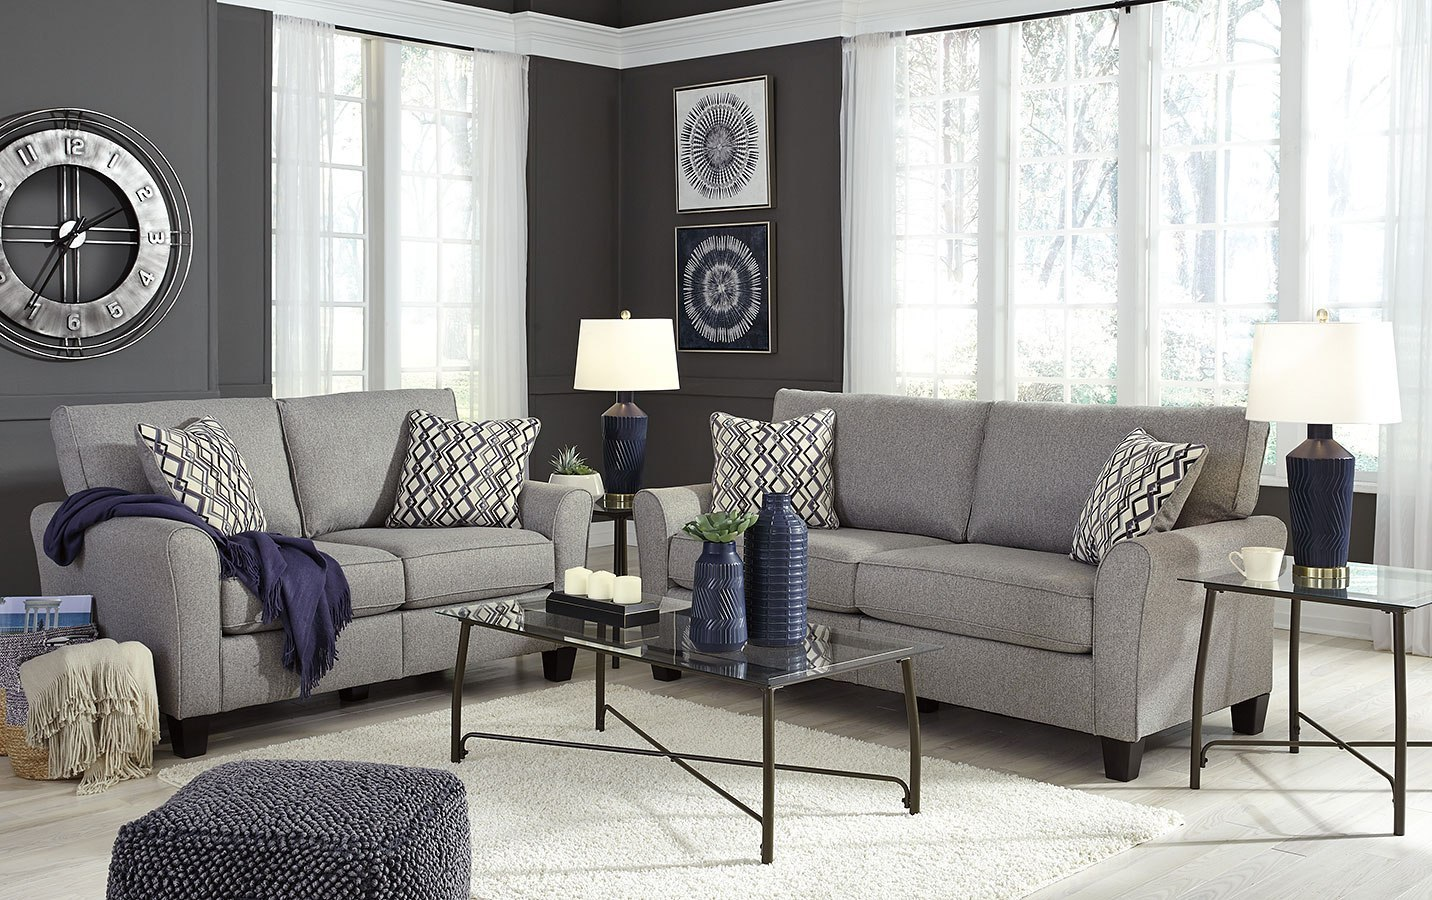 Strehela Silver Living Room Set By Signature Design By